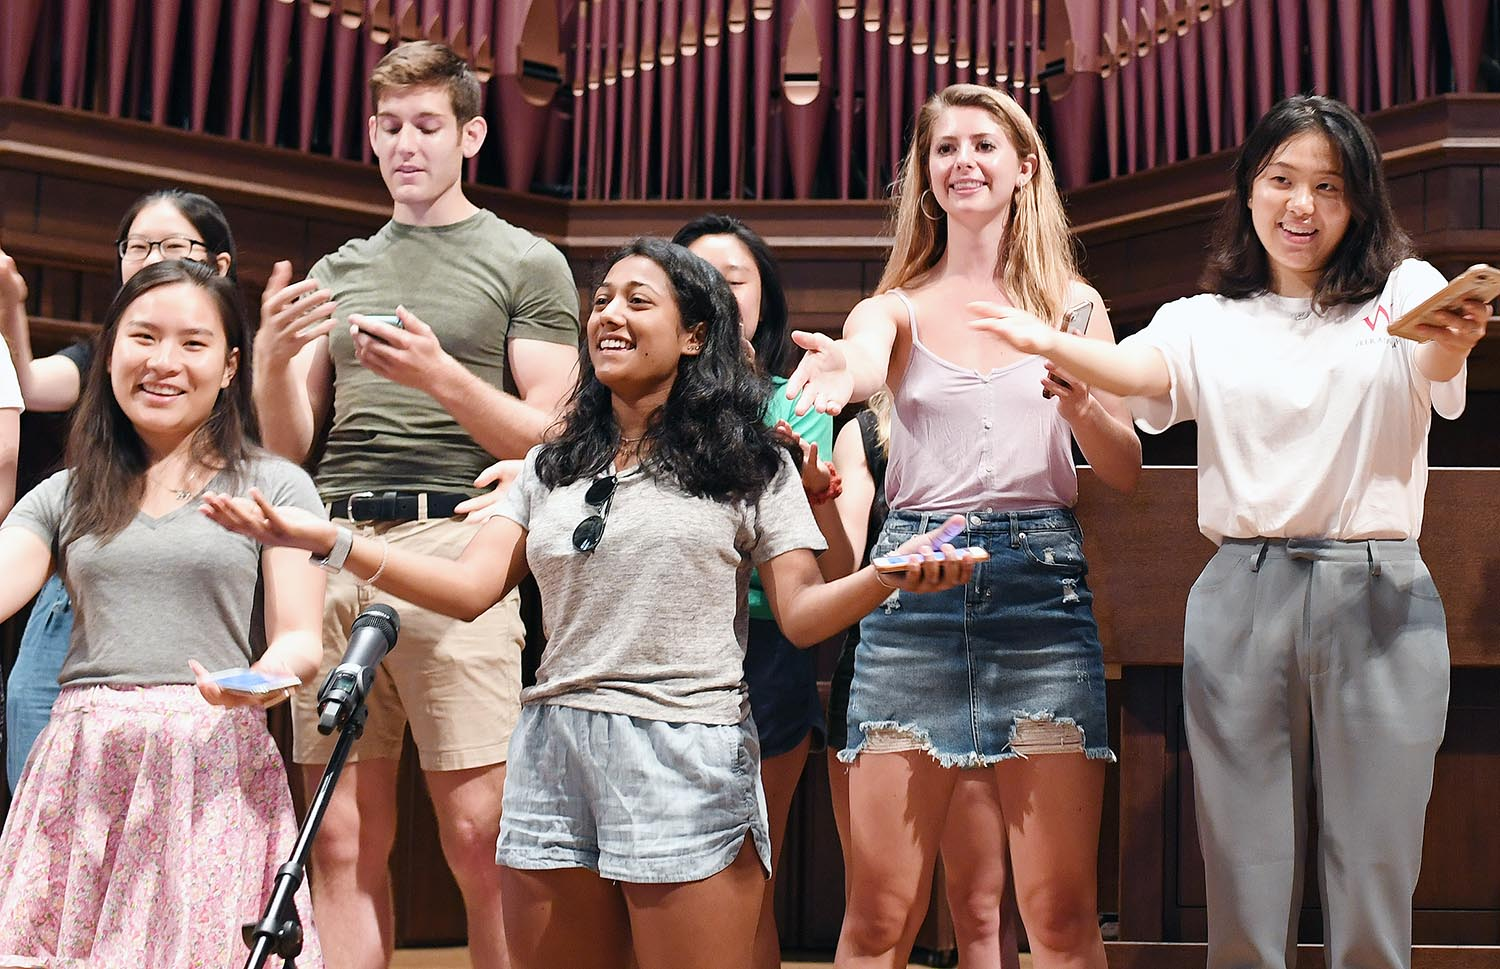 On Aug. 31, Wesleyan's peer advisors wrote and performed a song for the Class of 2022 during a Getting Good Advice workshop, held in conjunction with New Student Orientation.